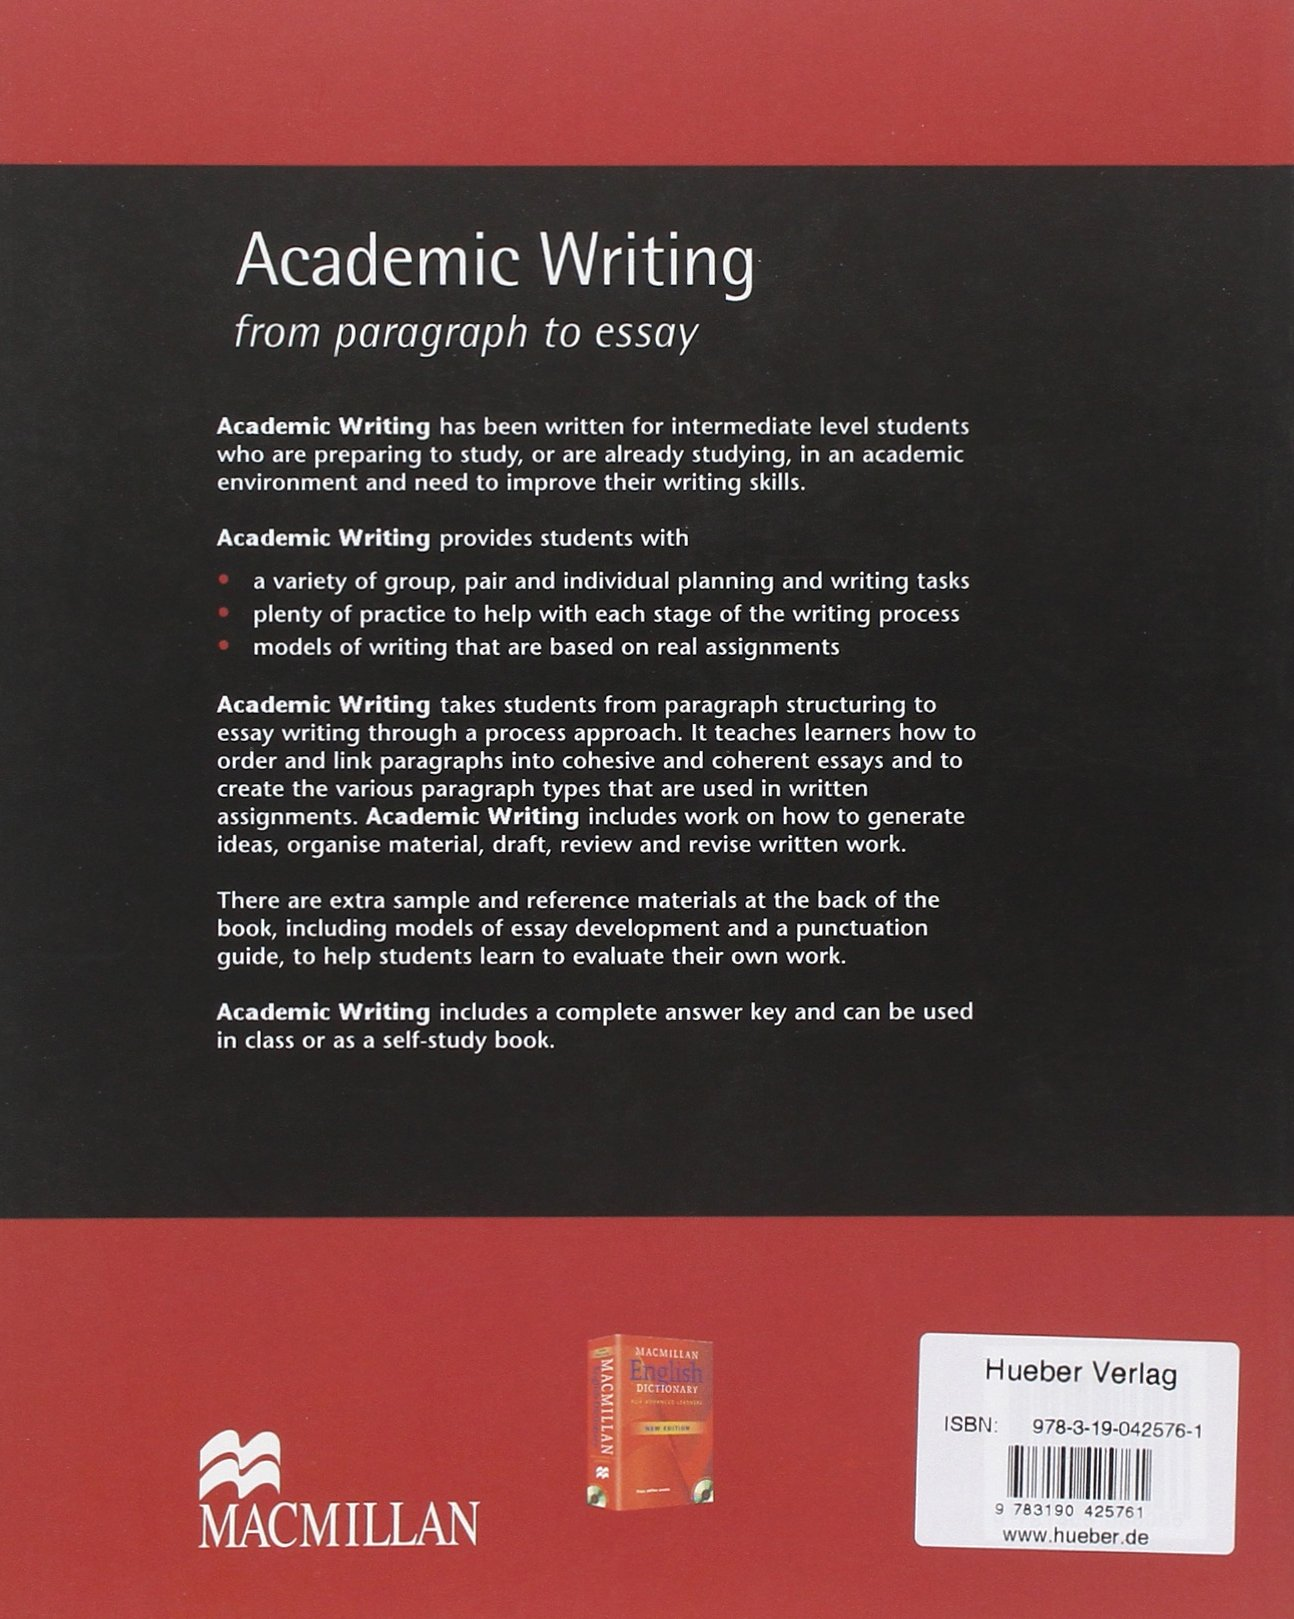 academic writing from paragraph to essay co uk dorothy e academic writing from paragraph to essay co uk dorothy e zemach lisa rumisek 9783190425761 books